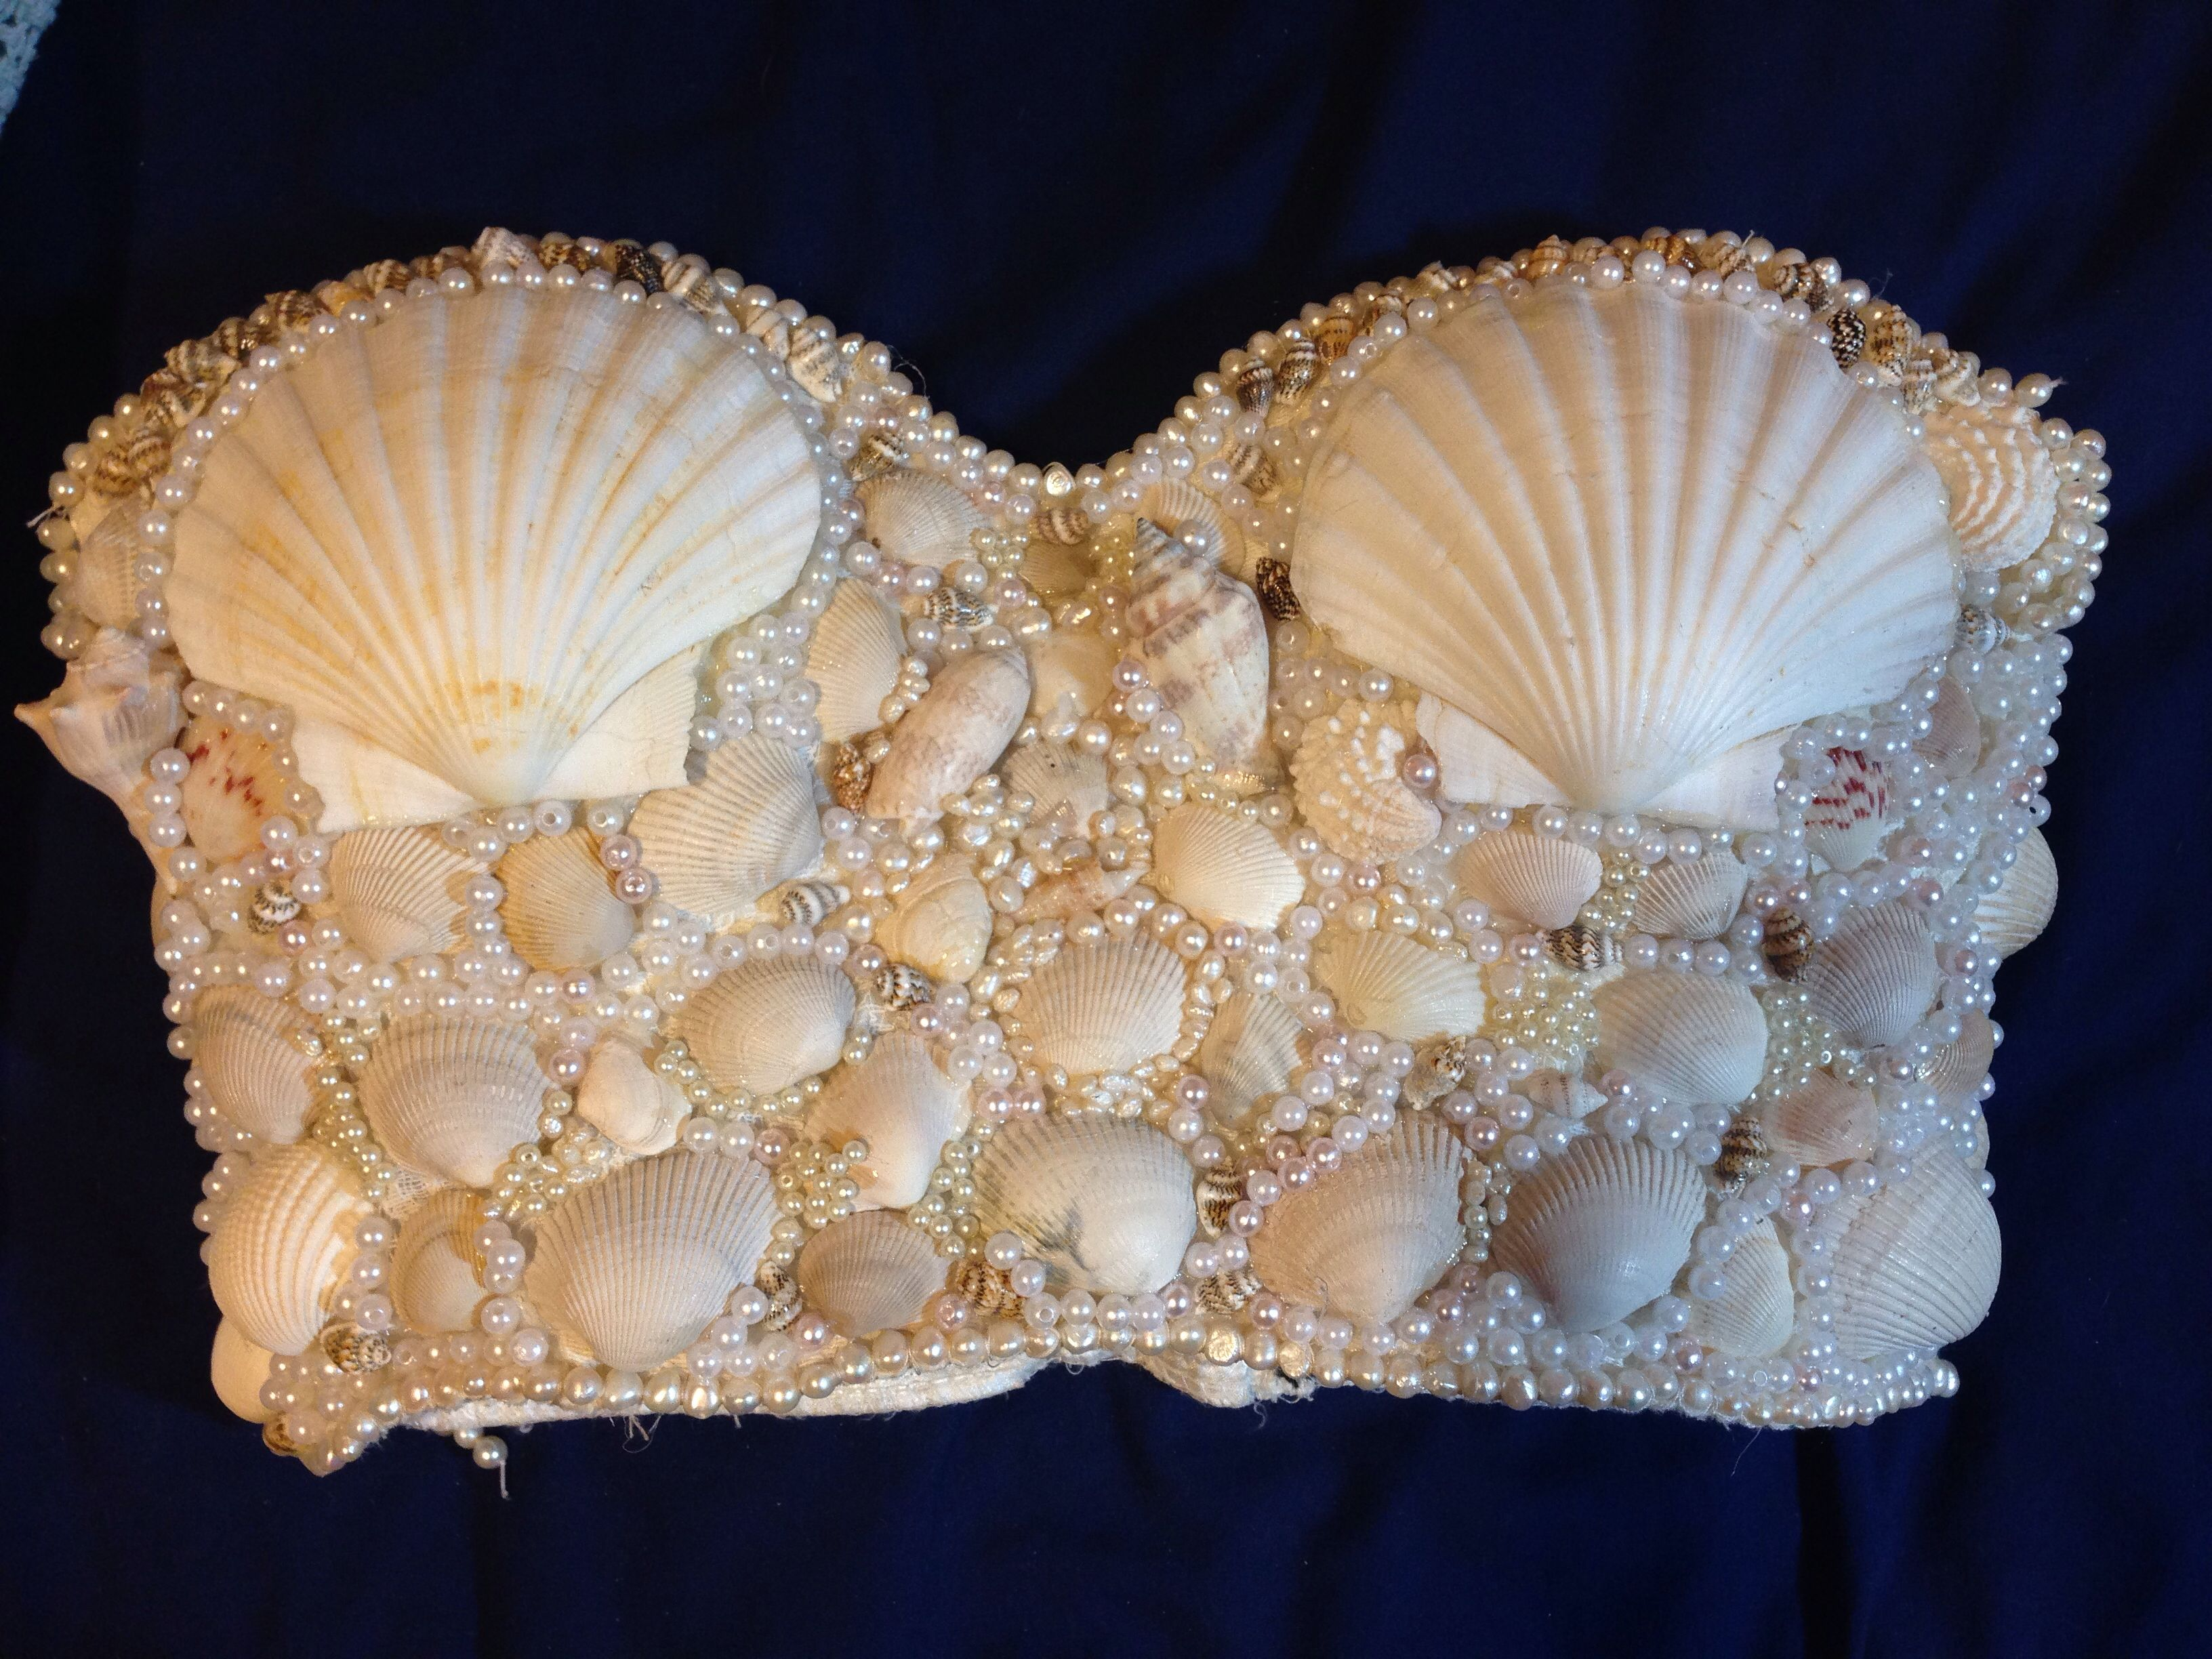 d8b5d227061 My DIY mermaid bra top. Inspired by Kim Kardashian s beautiful mermaid  costume from last year. All of the shells except the 2 large ones were  found on the ...